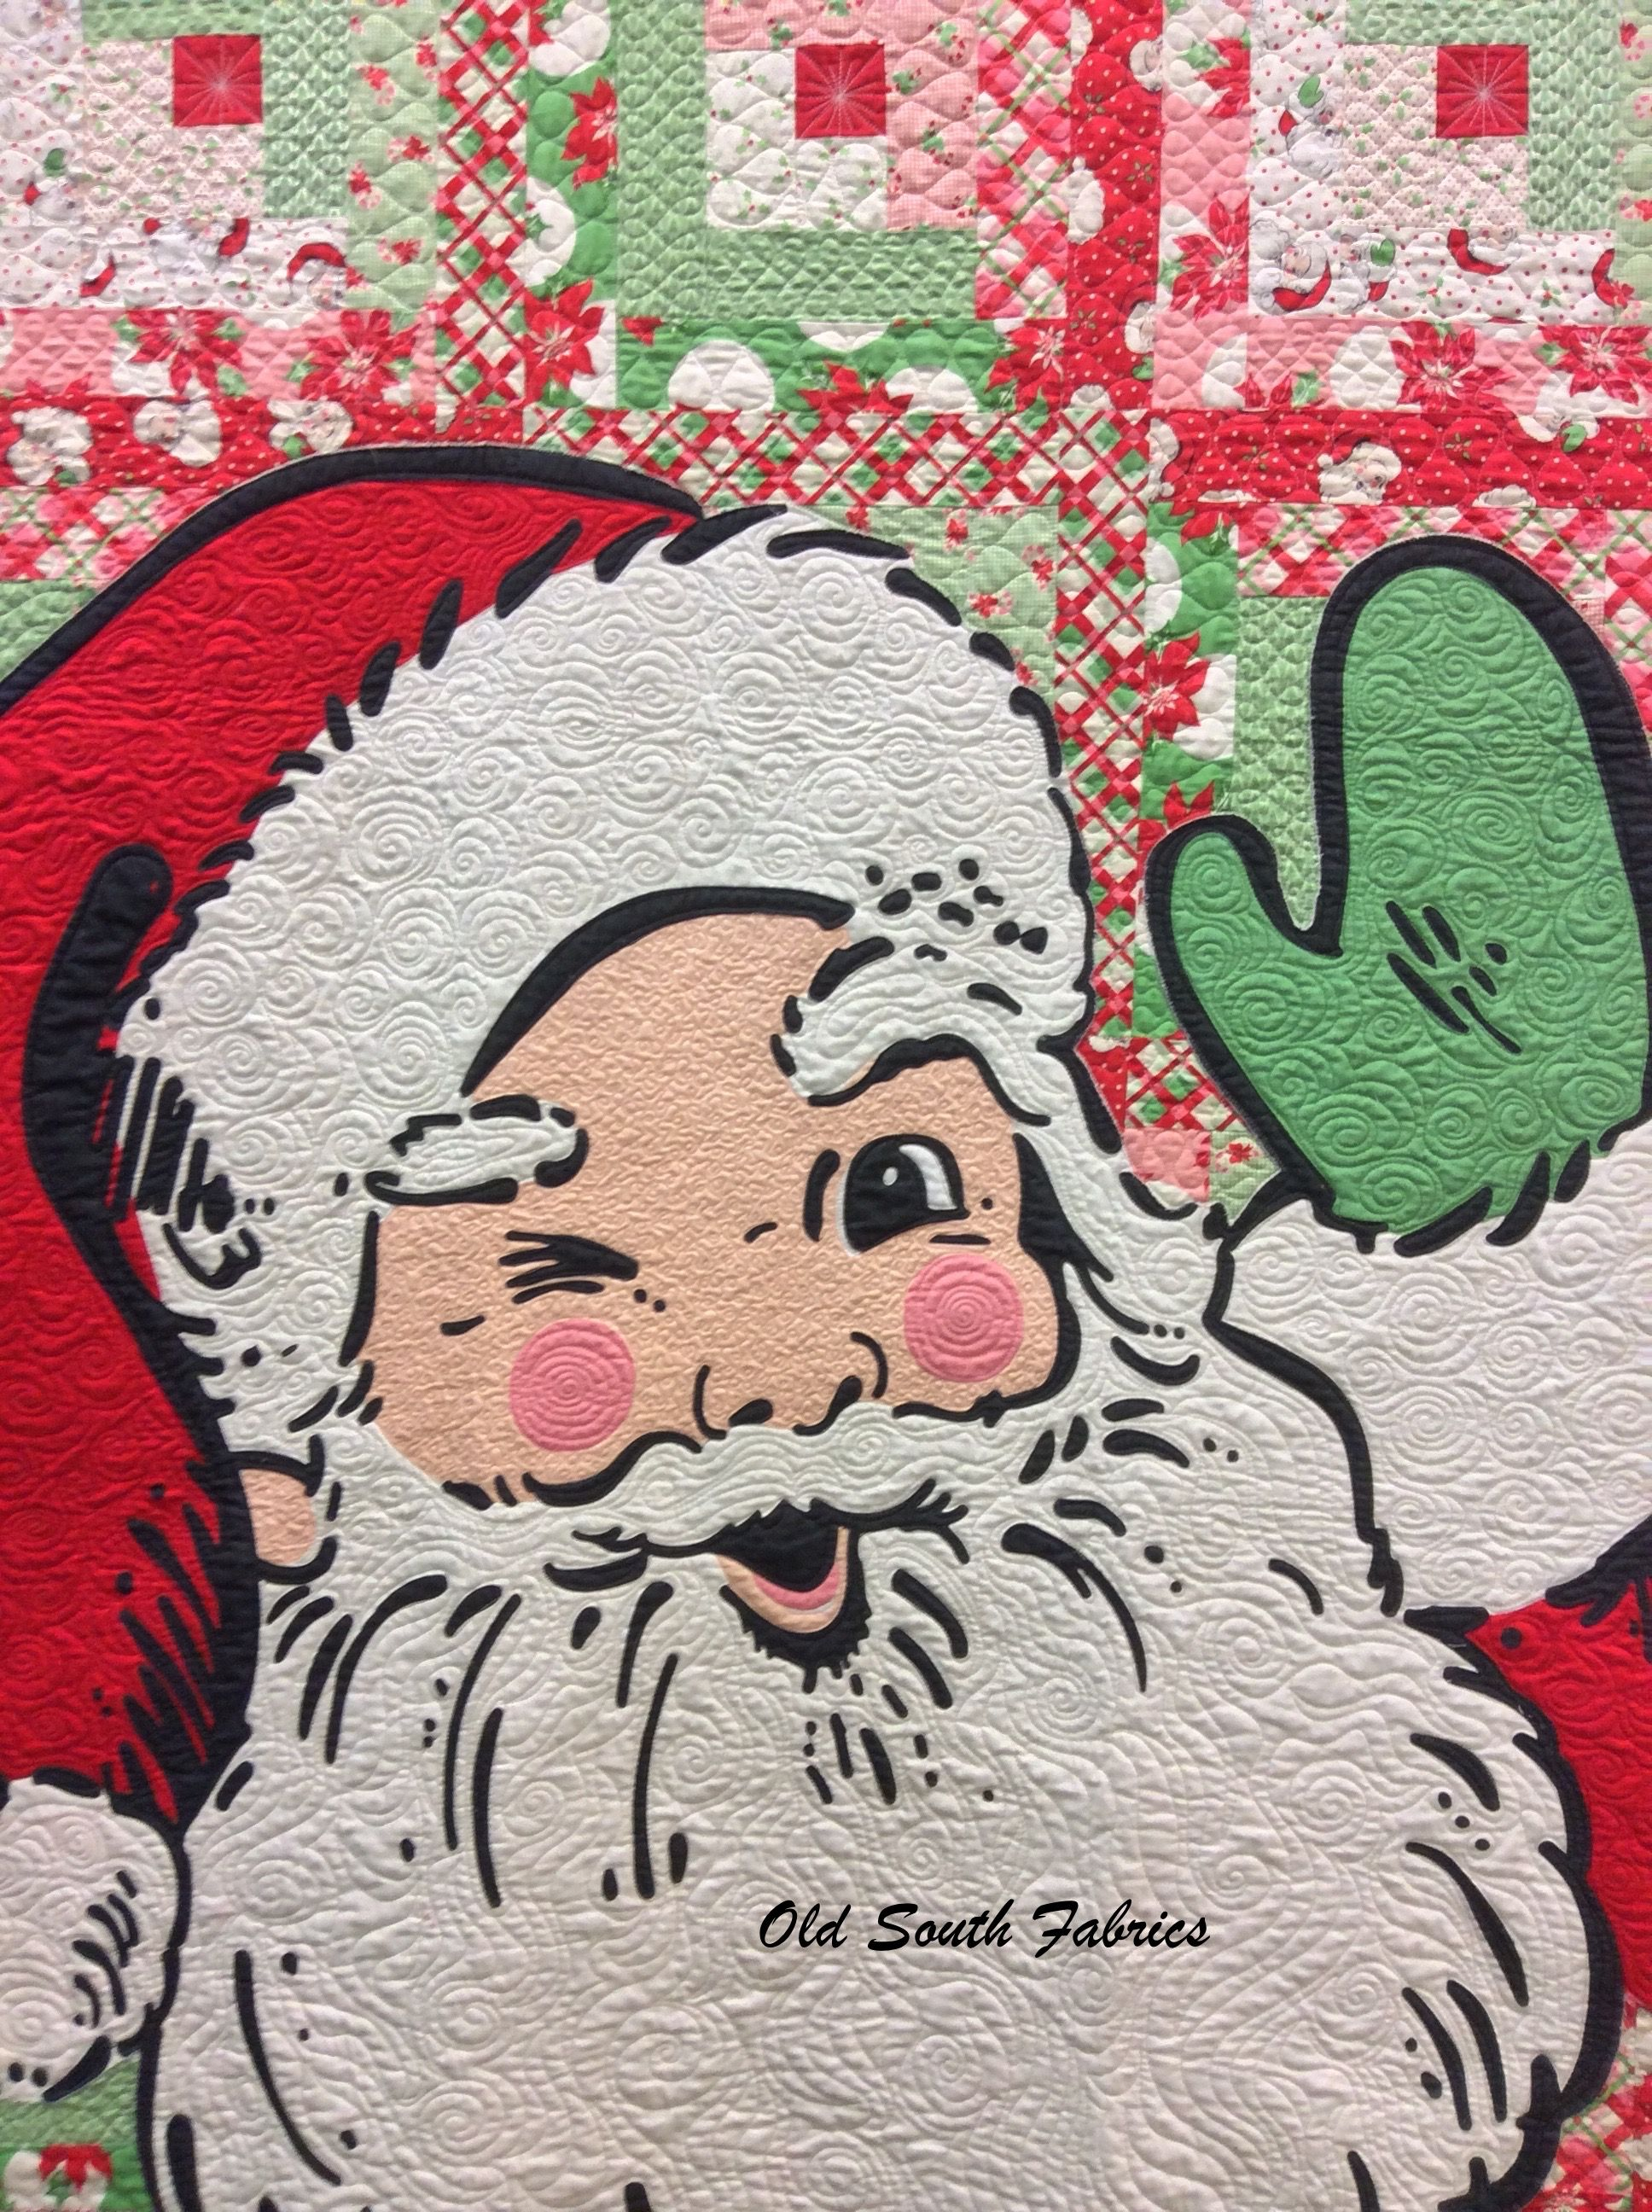 Pre Order Swell Christmas Quilt Kit Now From Old South Fabrics Http Www Oldsouthfabrics Com Shop Fabric Fabri Christmas Quilts Santa Quilt Swell Christmas